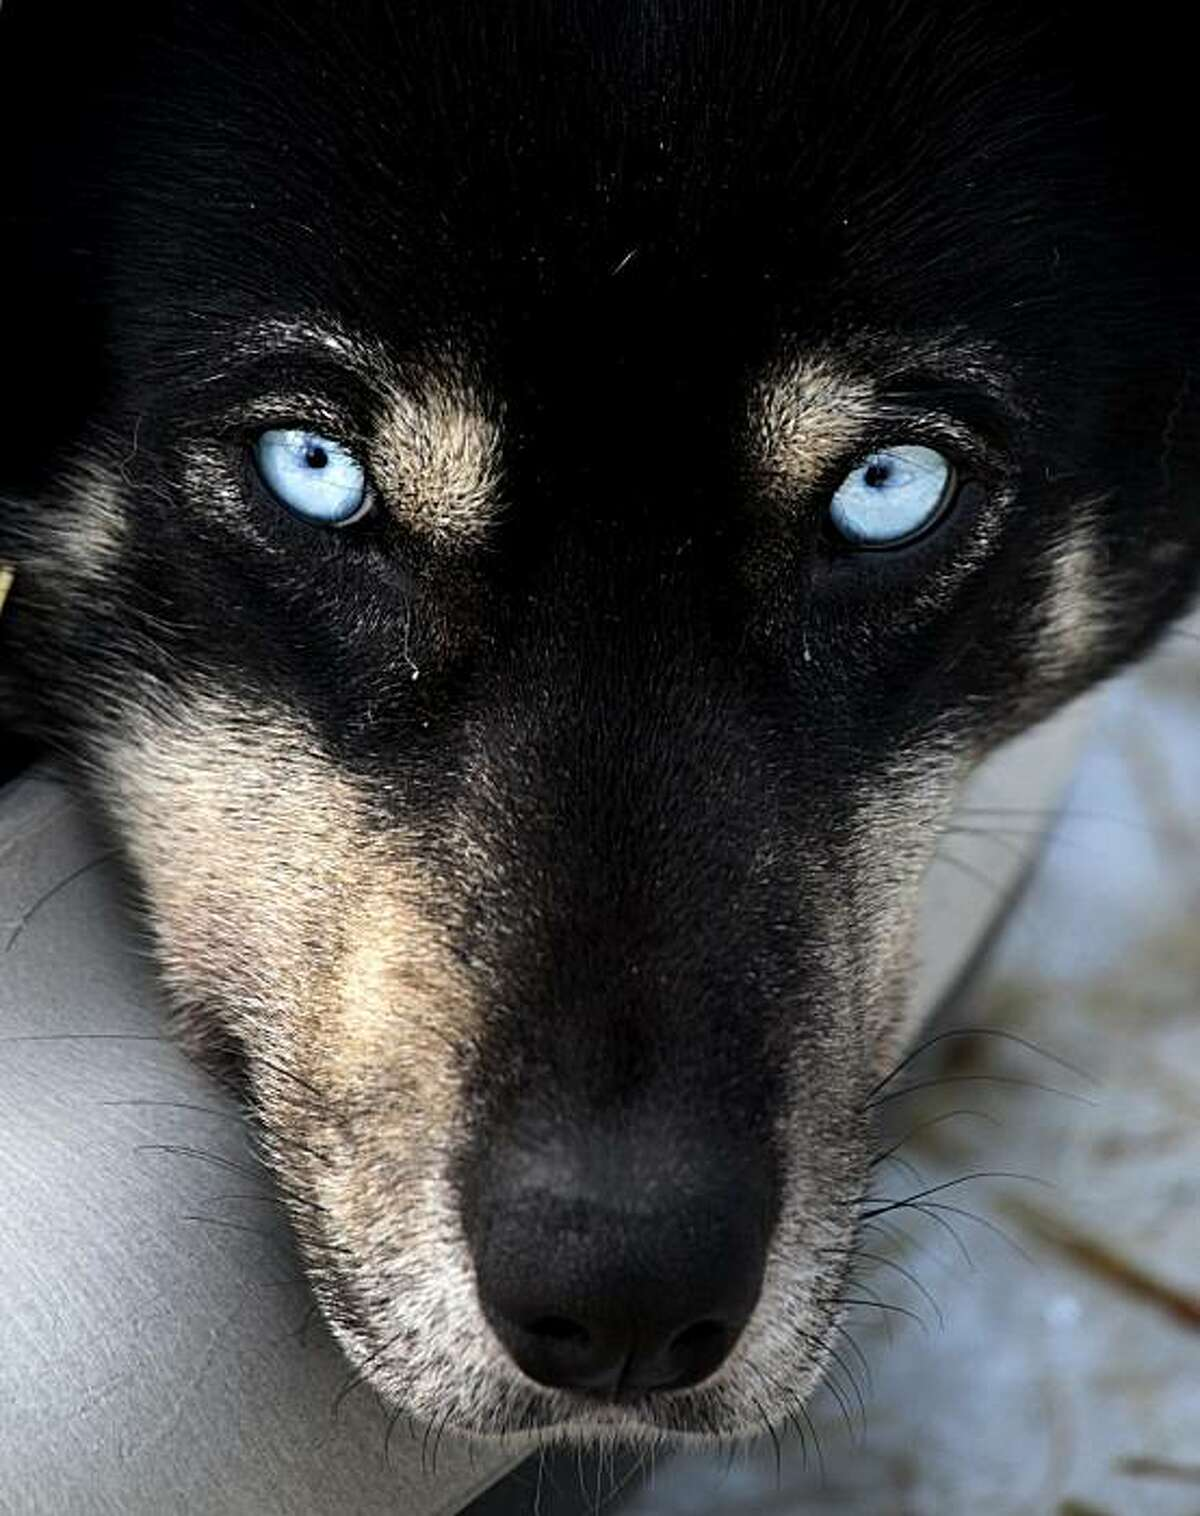 A sled dog rests at a kennel operated by Whistler Outdoor Adventures near Whistler, British Columbia, on Saturday, Feb. 5, 2011. A government task force has been created to investigate after a Whistler outdoor adventure company shot and killed 100 healthysled dogs after bookings dropped following the 2010 Winter Olympics.